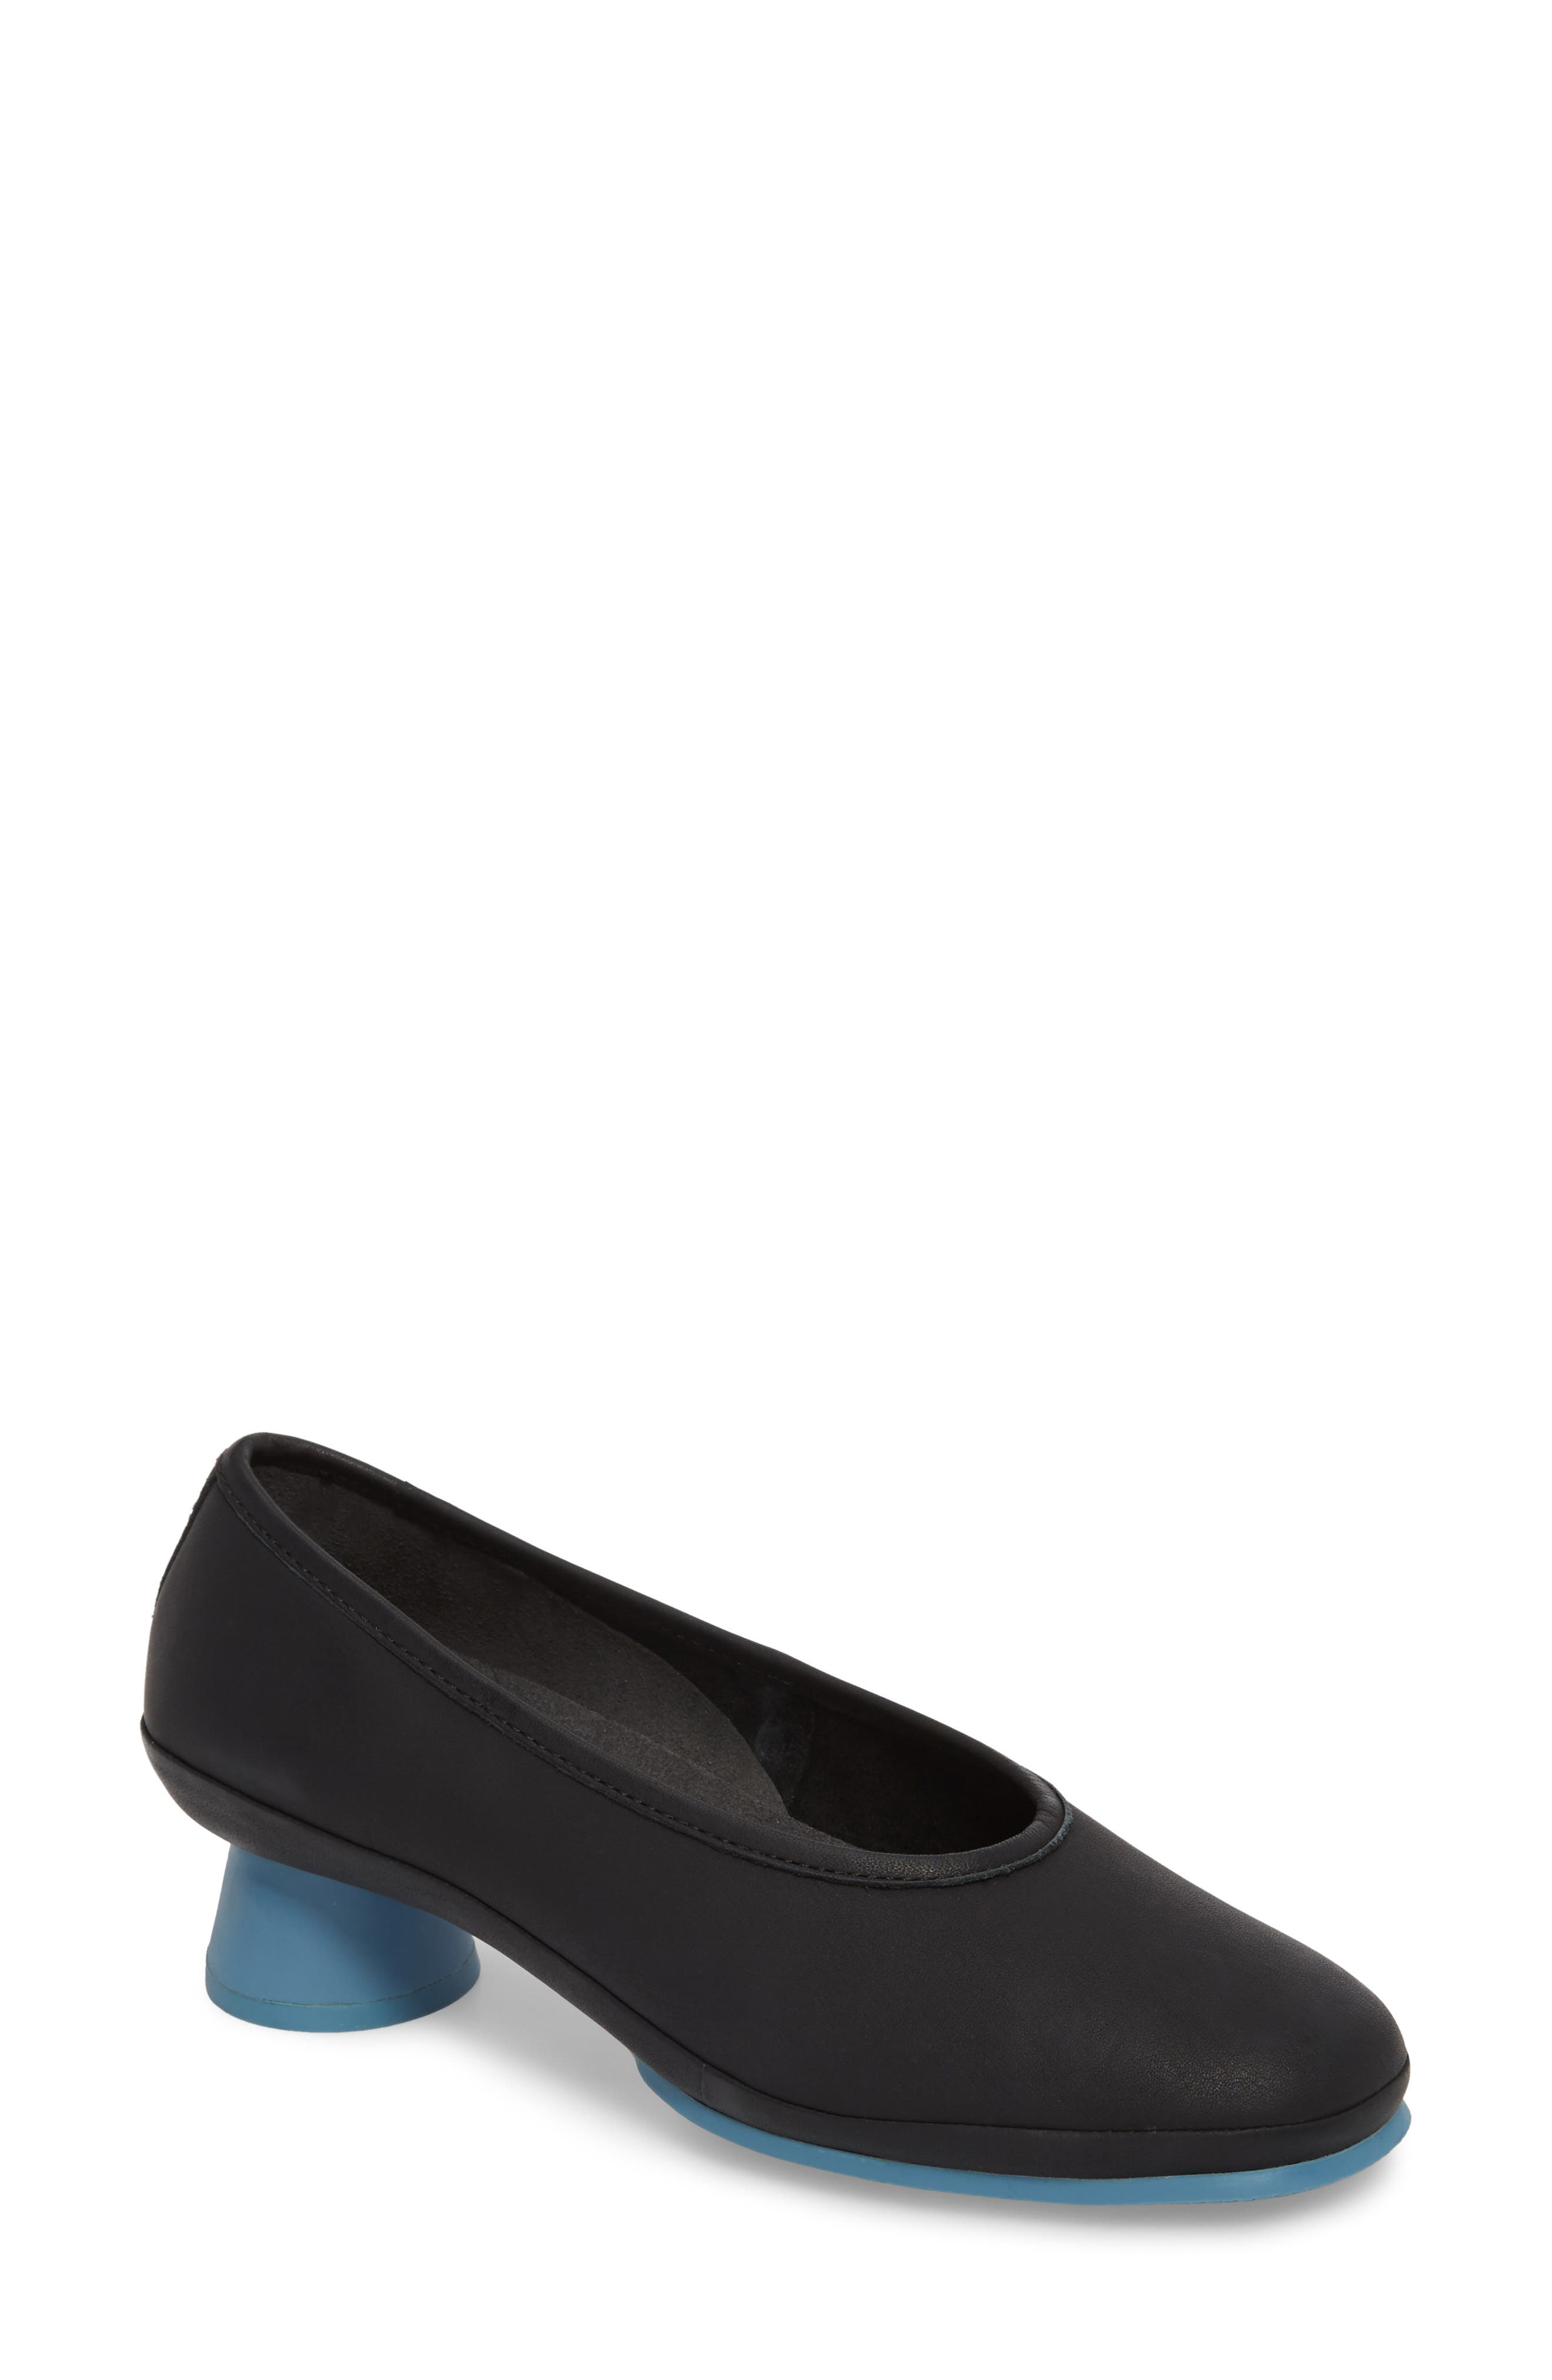 Alright Cone Heel Pump,                             Main thumbnail 1, color,                             Black Leather